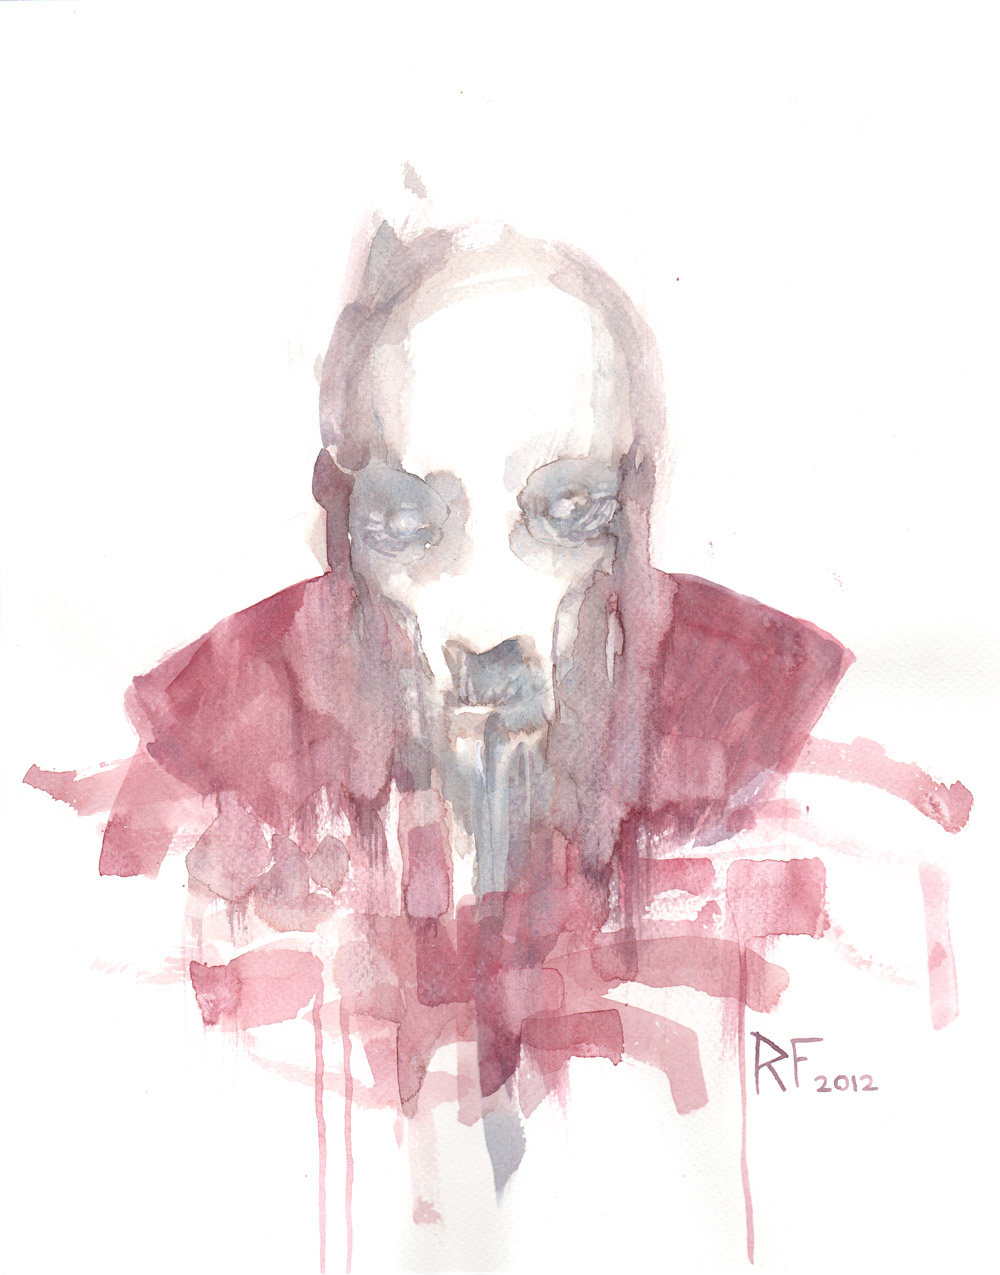 Deadman - Water color sketch